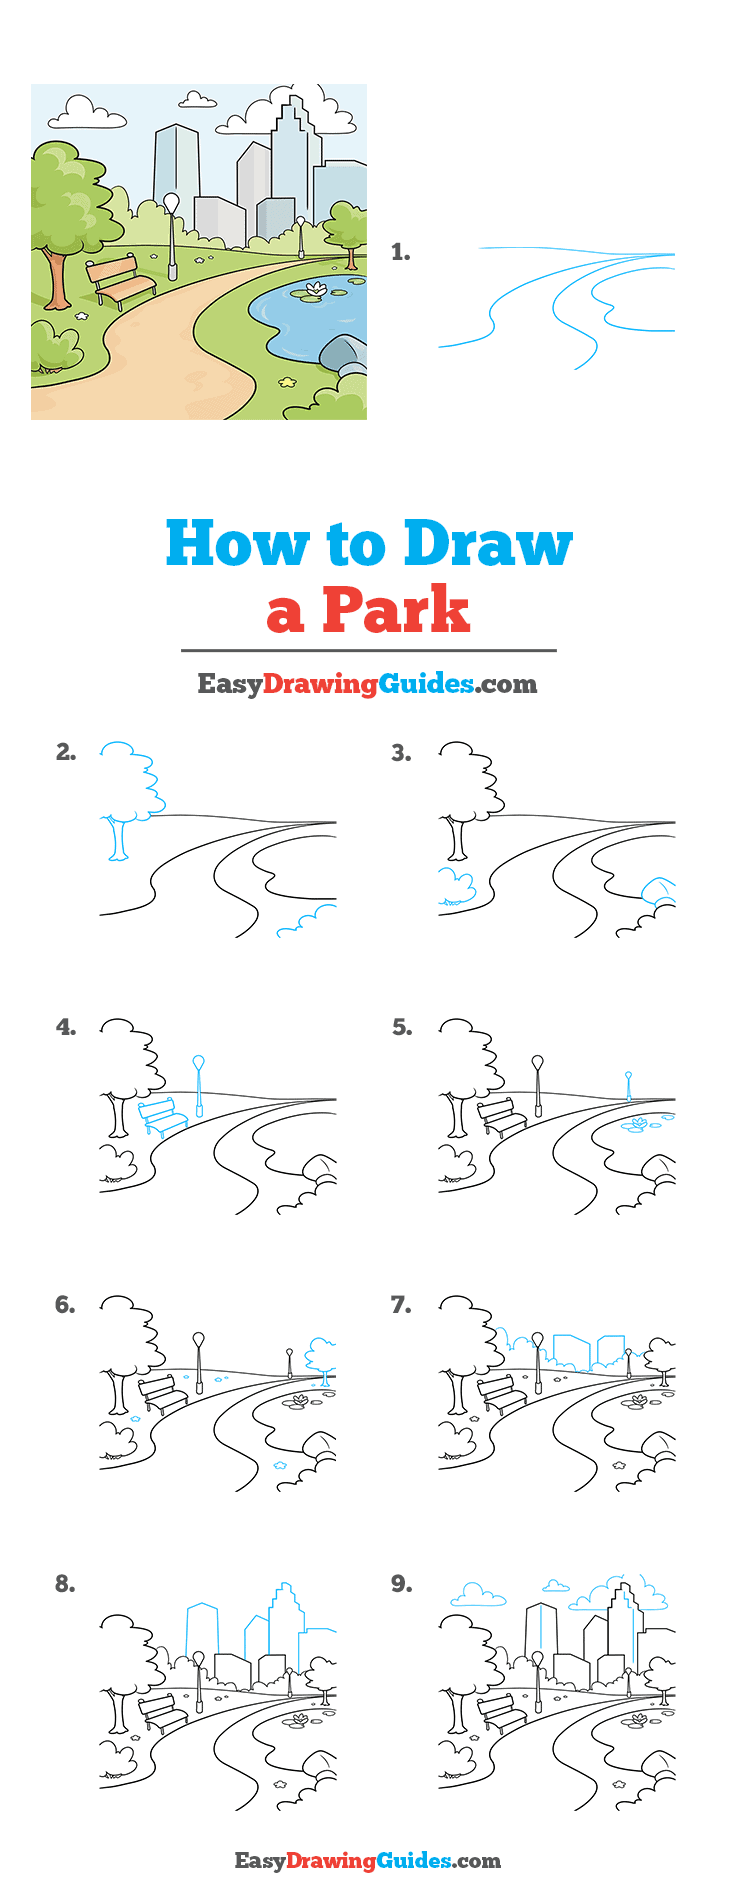 How to Draw Park